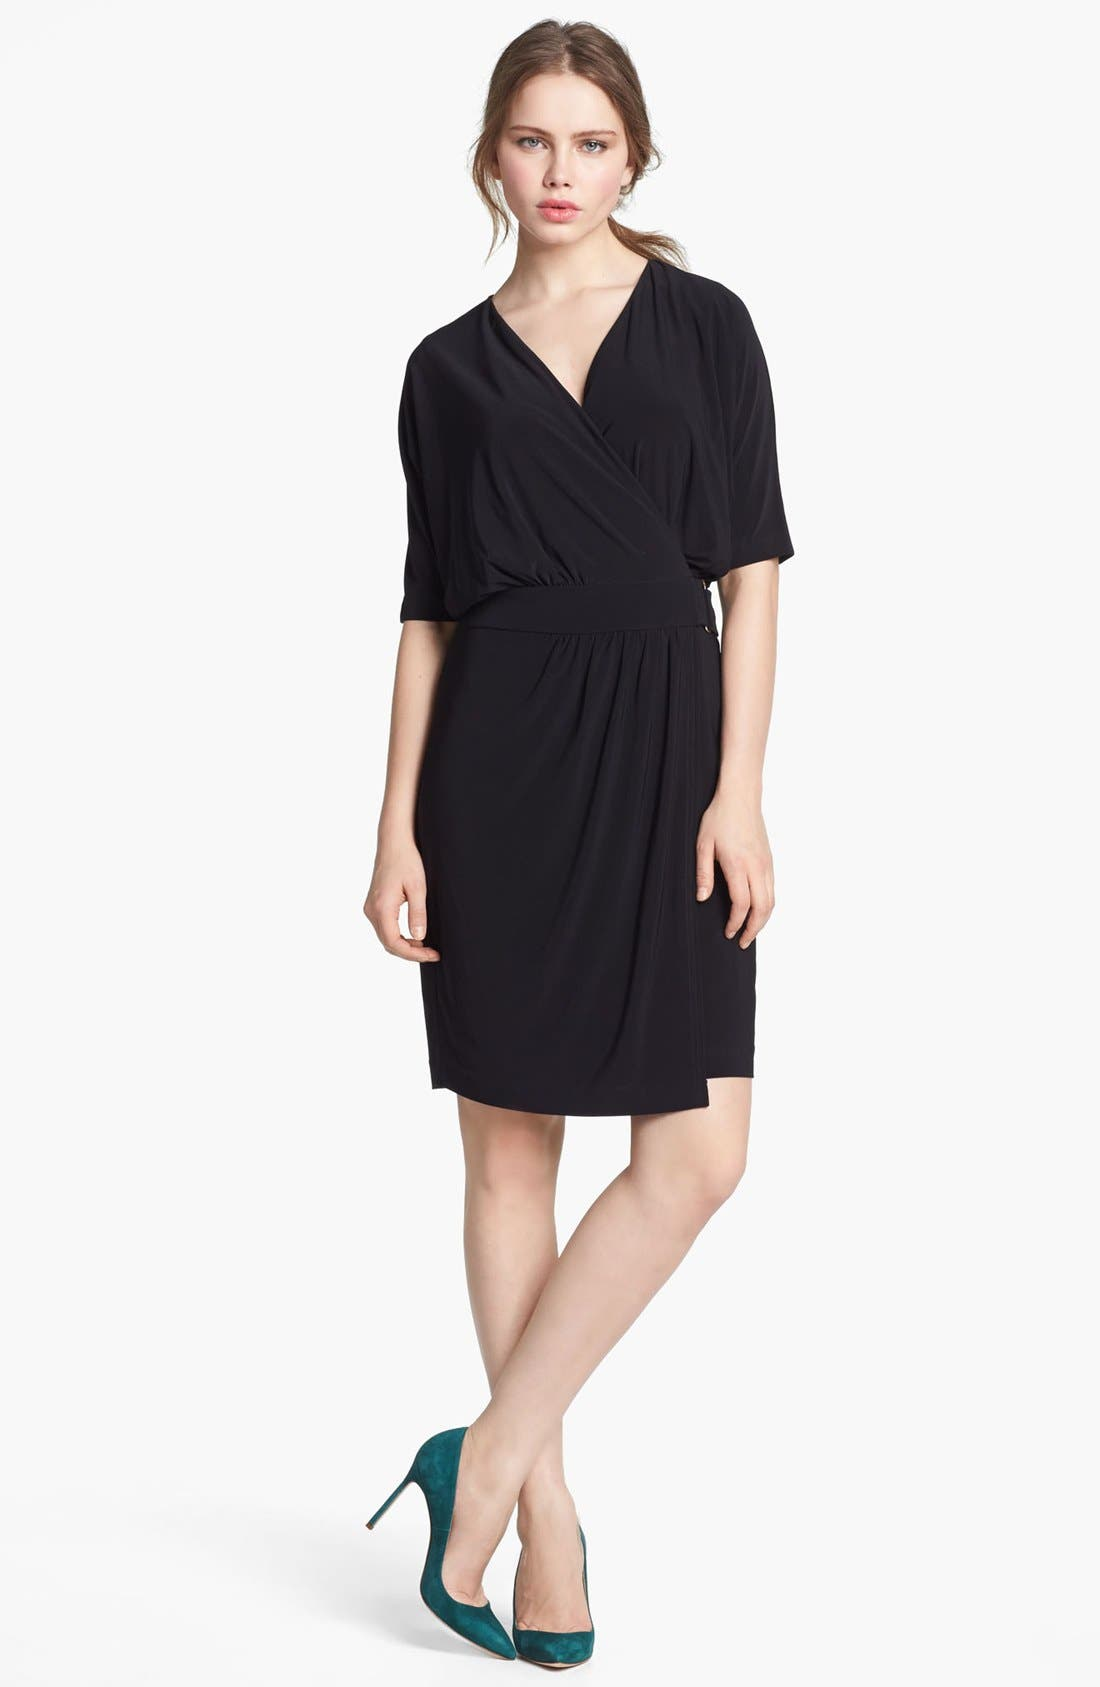 Alternate Image 1 Selected - Vince Camuto Dolman Sleeve Faux Wrap Dress (Online Only)